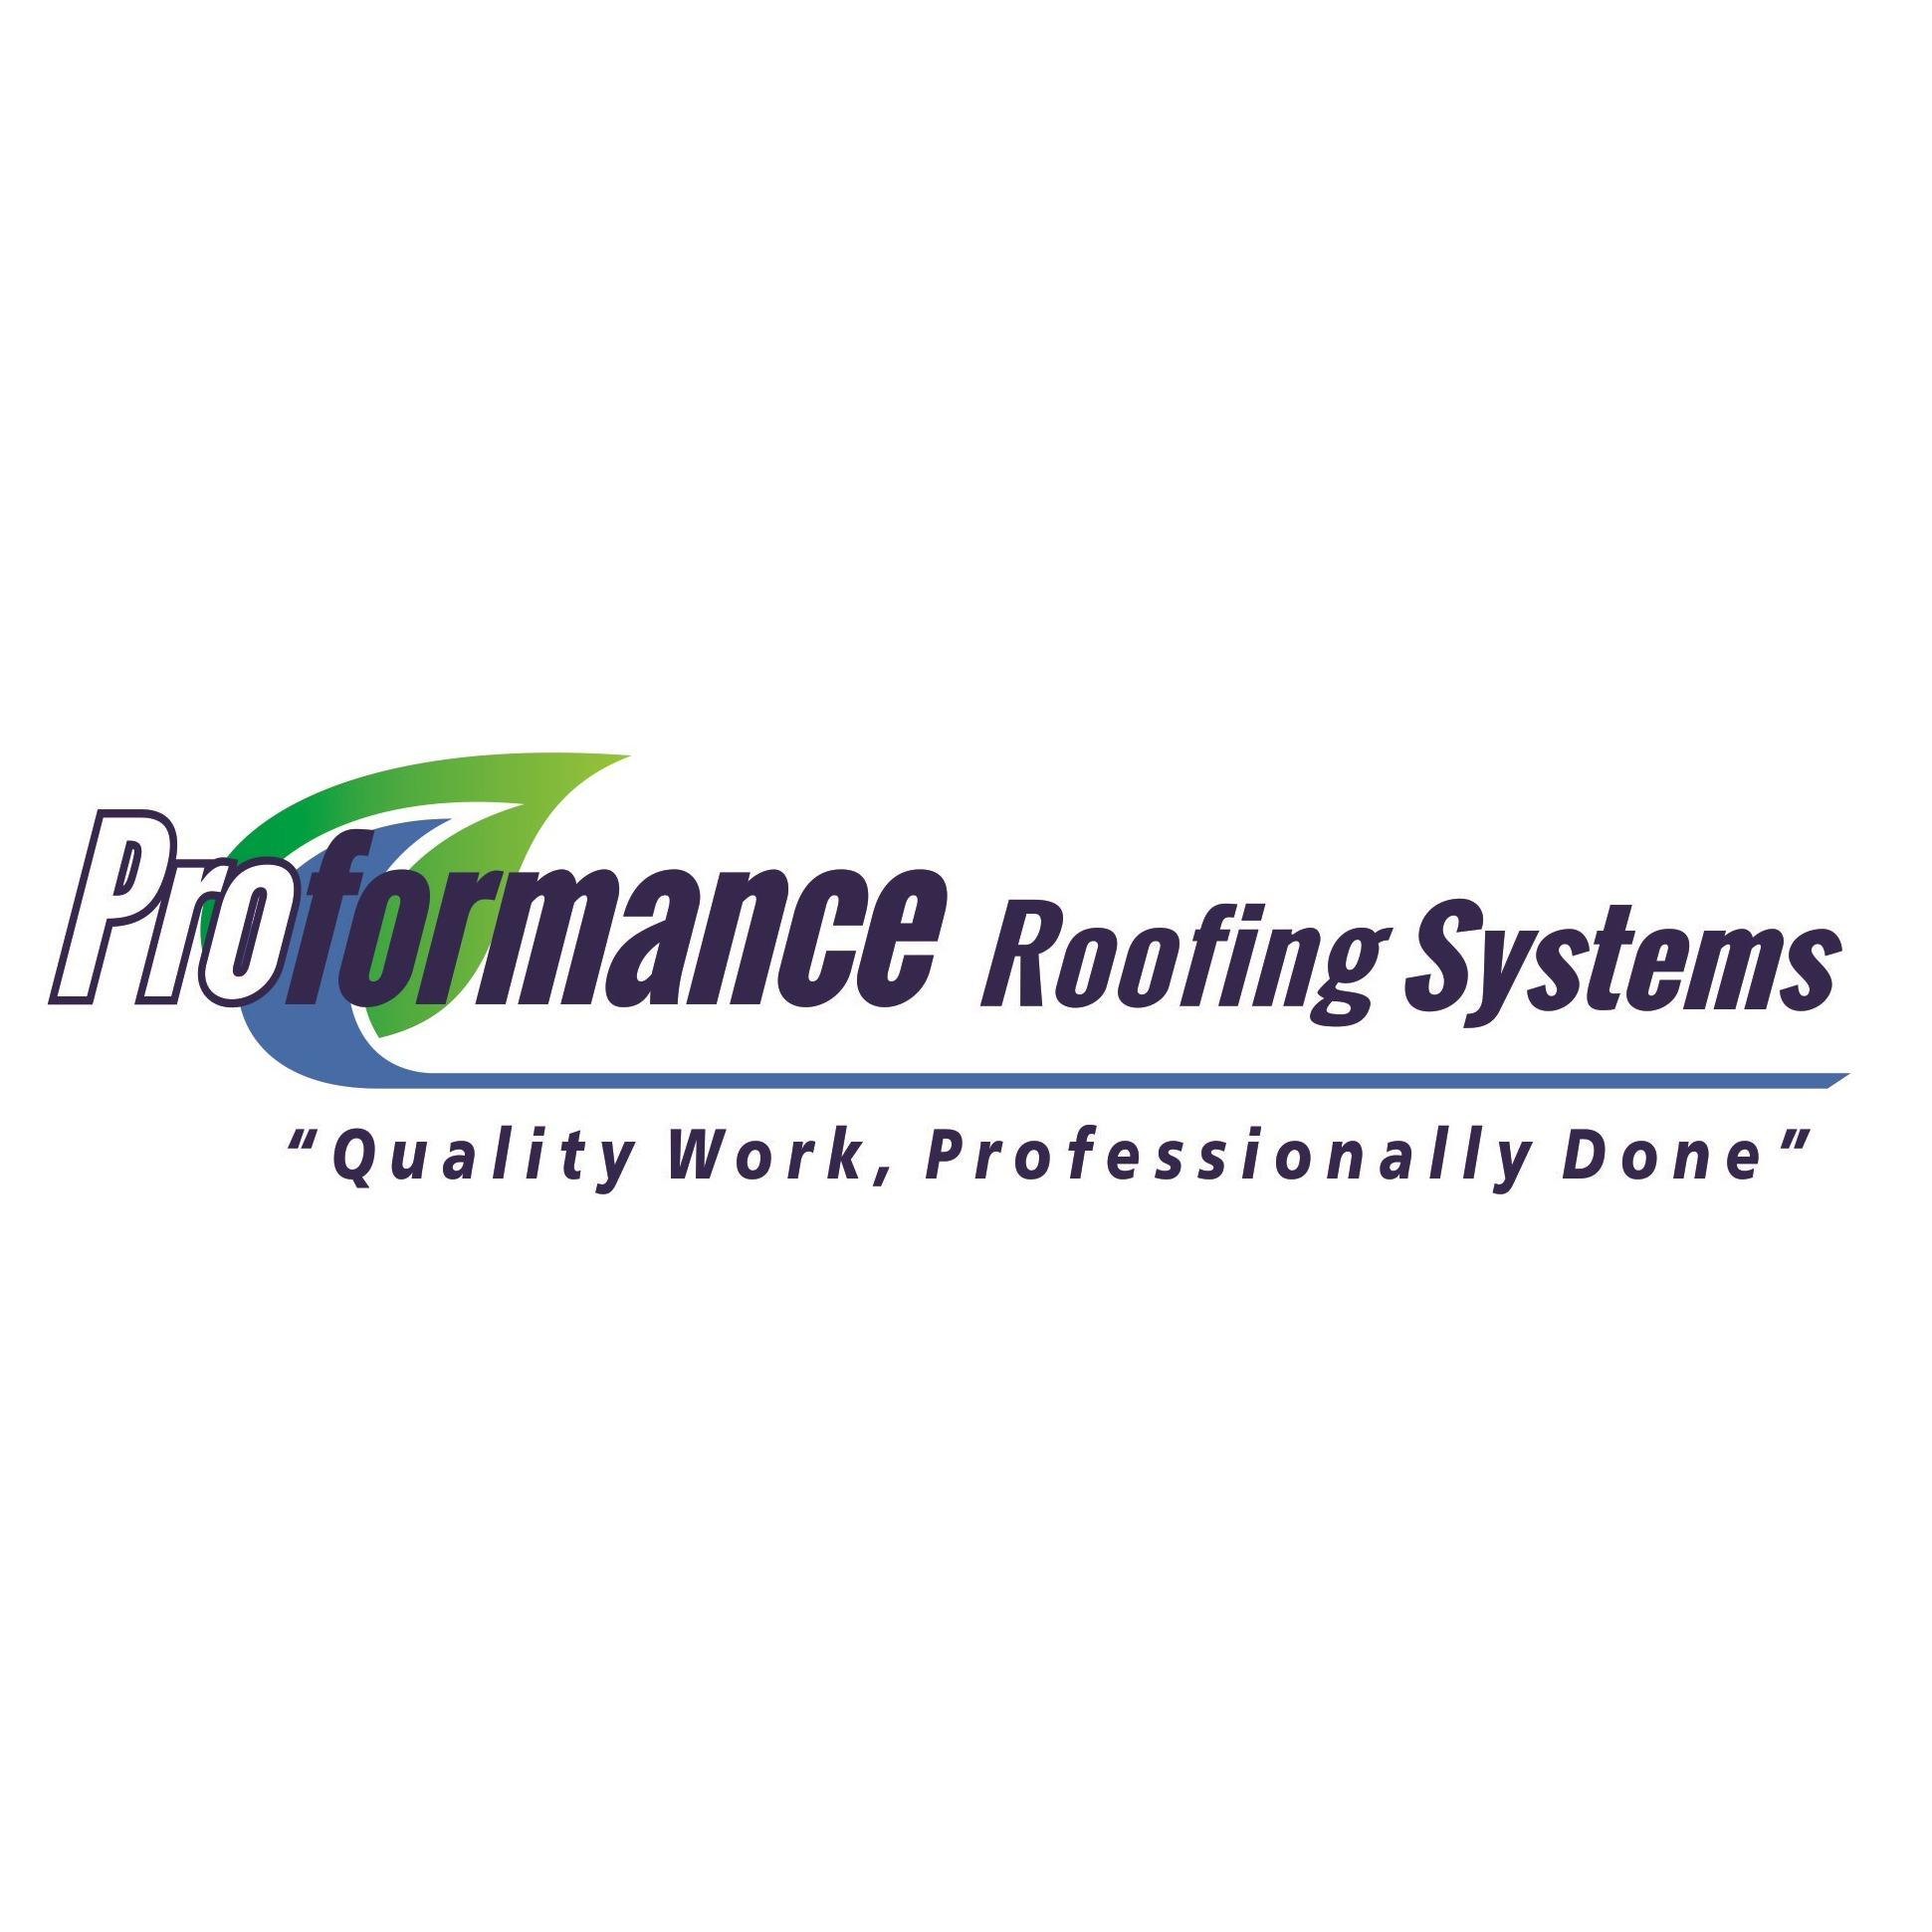 Proformance Roofing Systems image 0